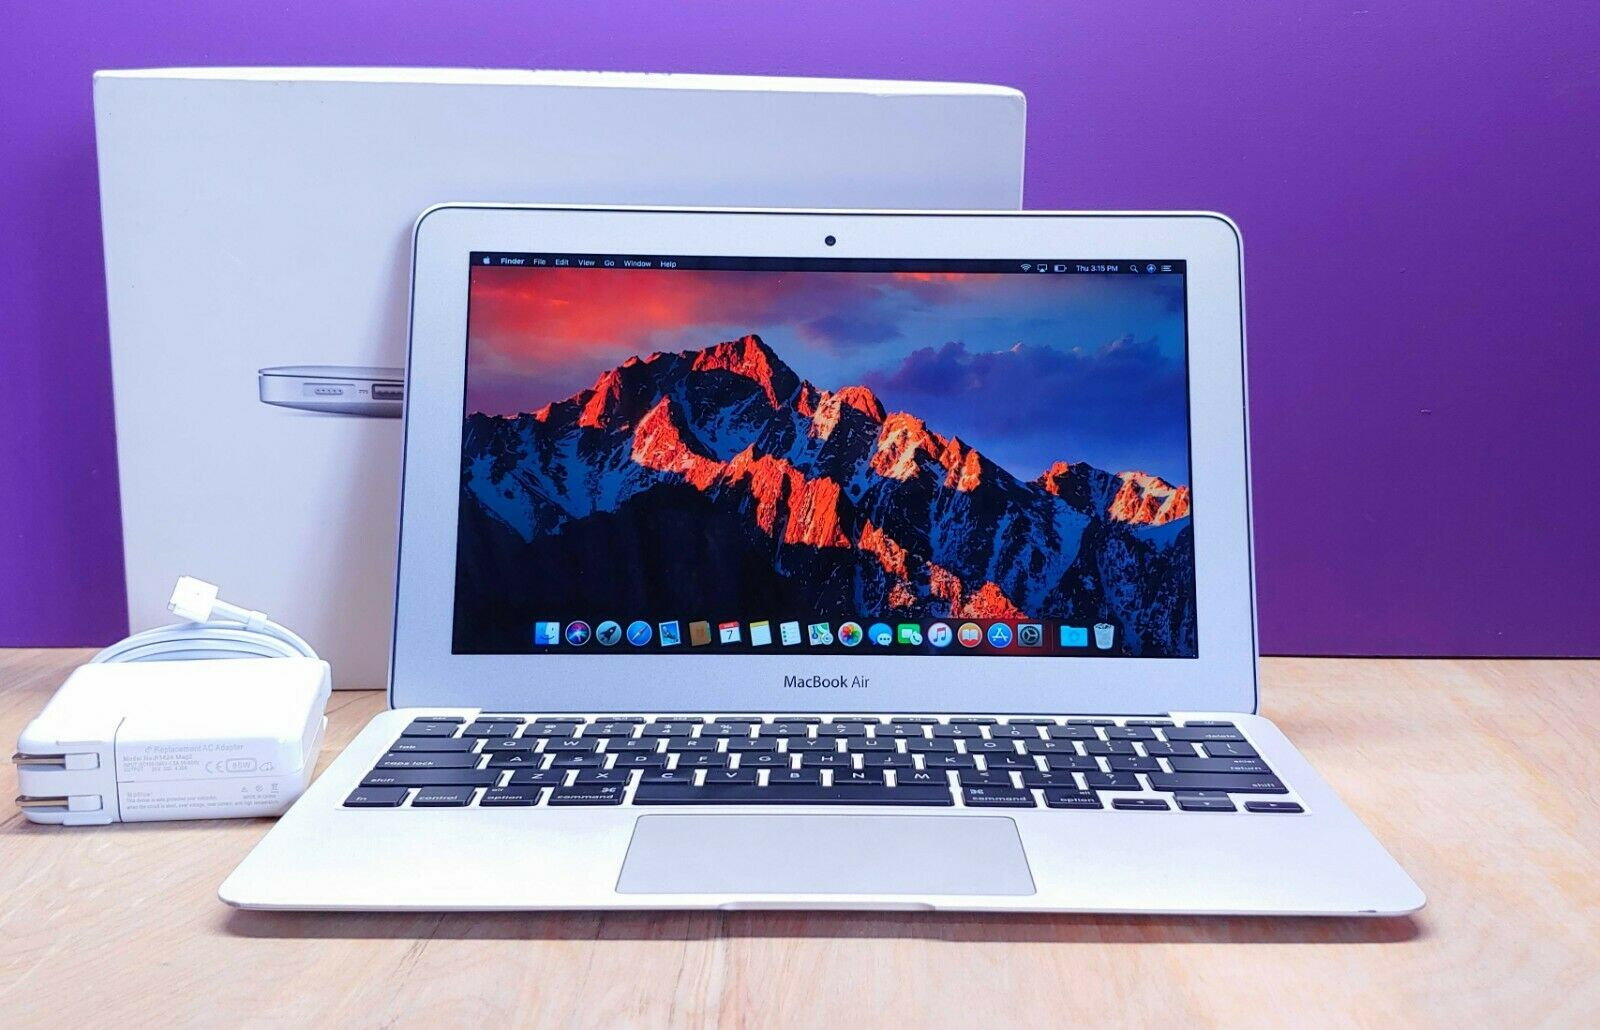 Apple MacBook Air 13 inch / RETINA / MacOS 2020 / 2 YEAR WARRANTY / CUSTOMIZE!. Buy it now for 489.00